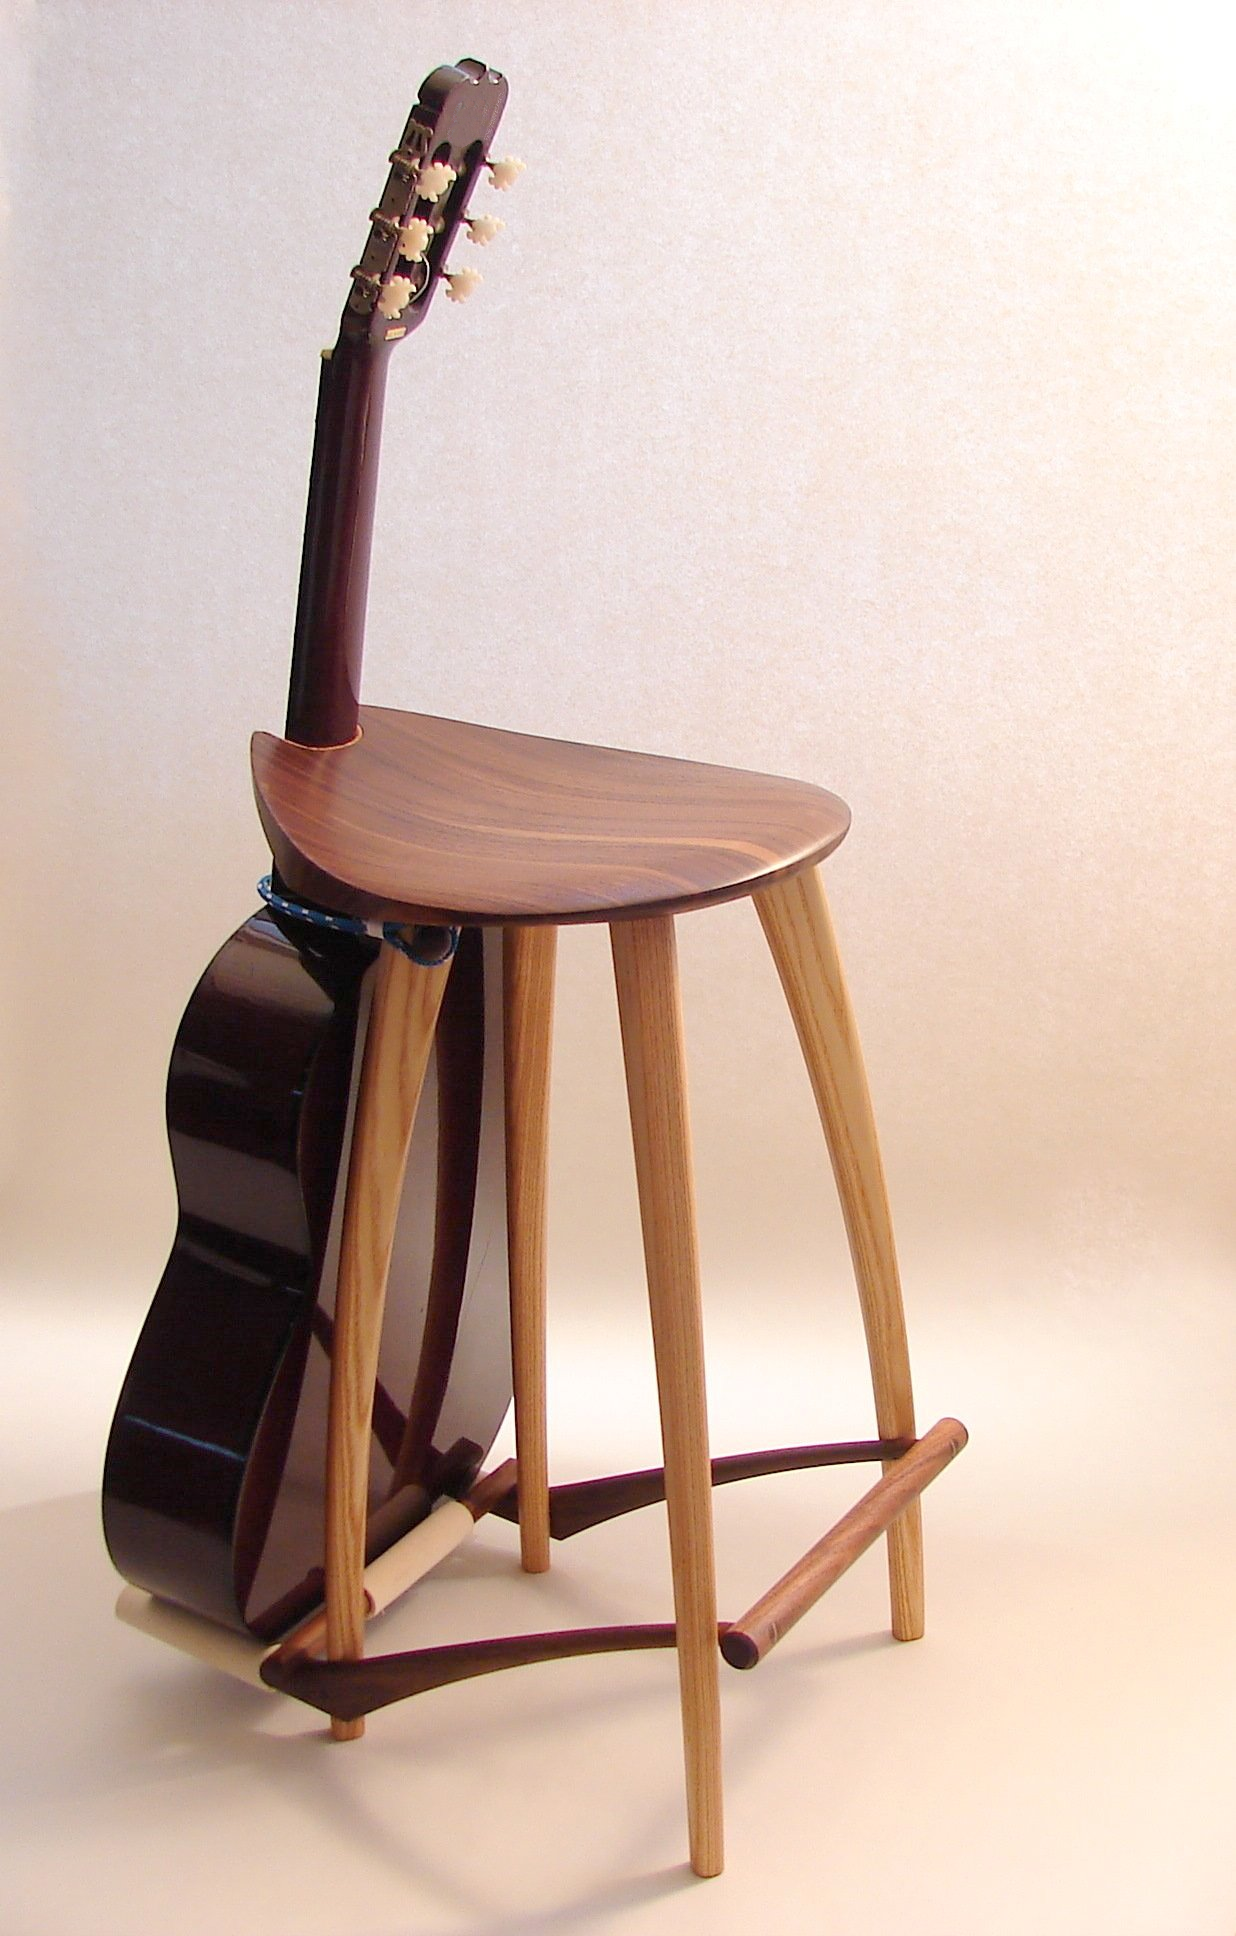 Guitar Stool Stand Fillingham Art Furniture Design